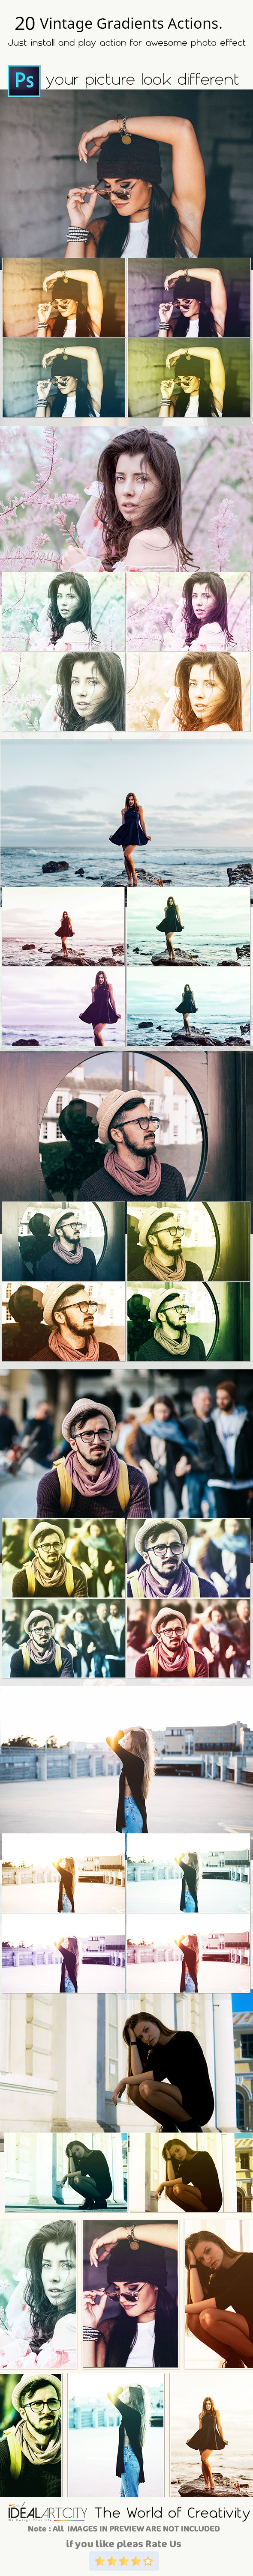 20 Vintage Gradients Actions - Photo Effects Actions